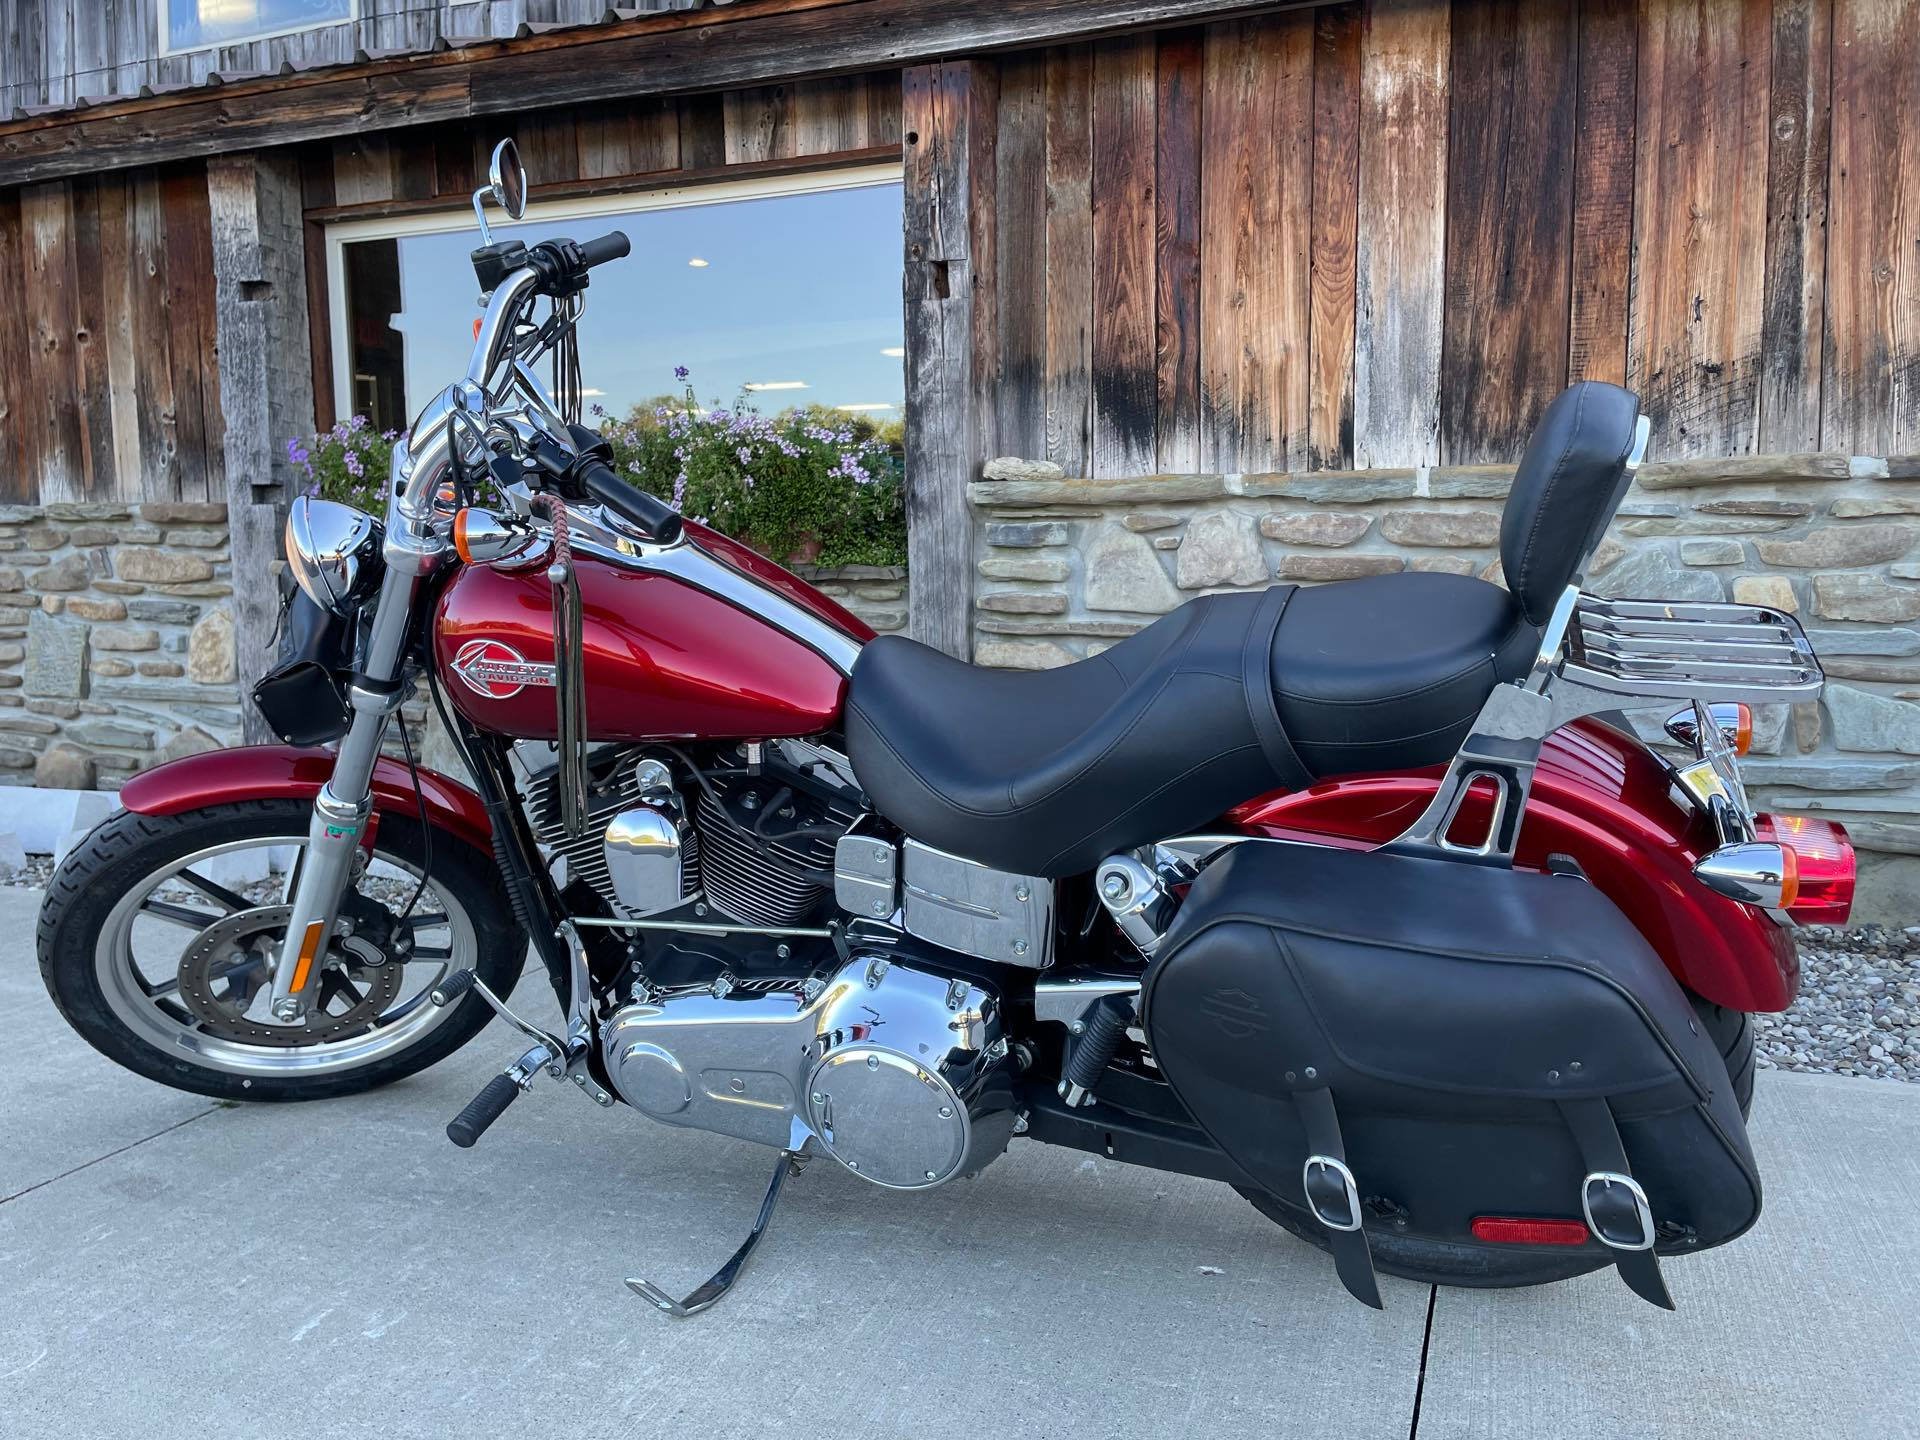 2008 Harley-Davidson Dyna Glide Low Rider at Arkport Cycles